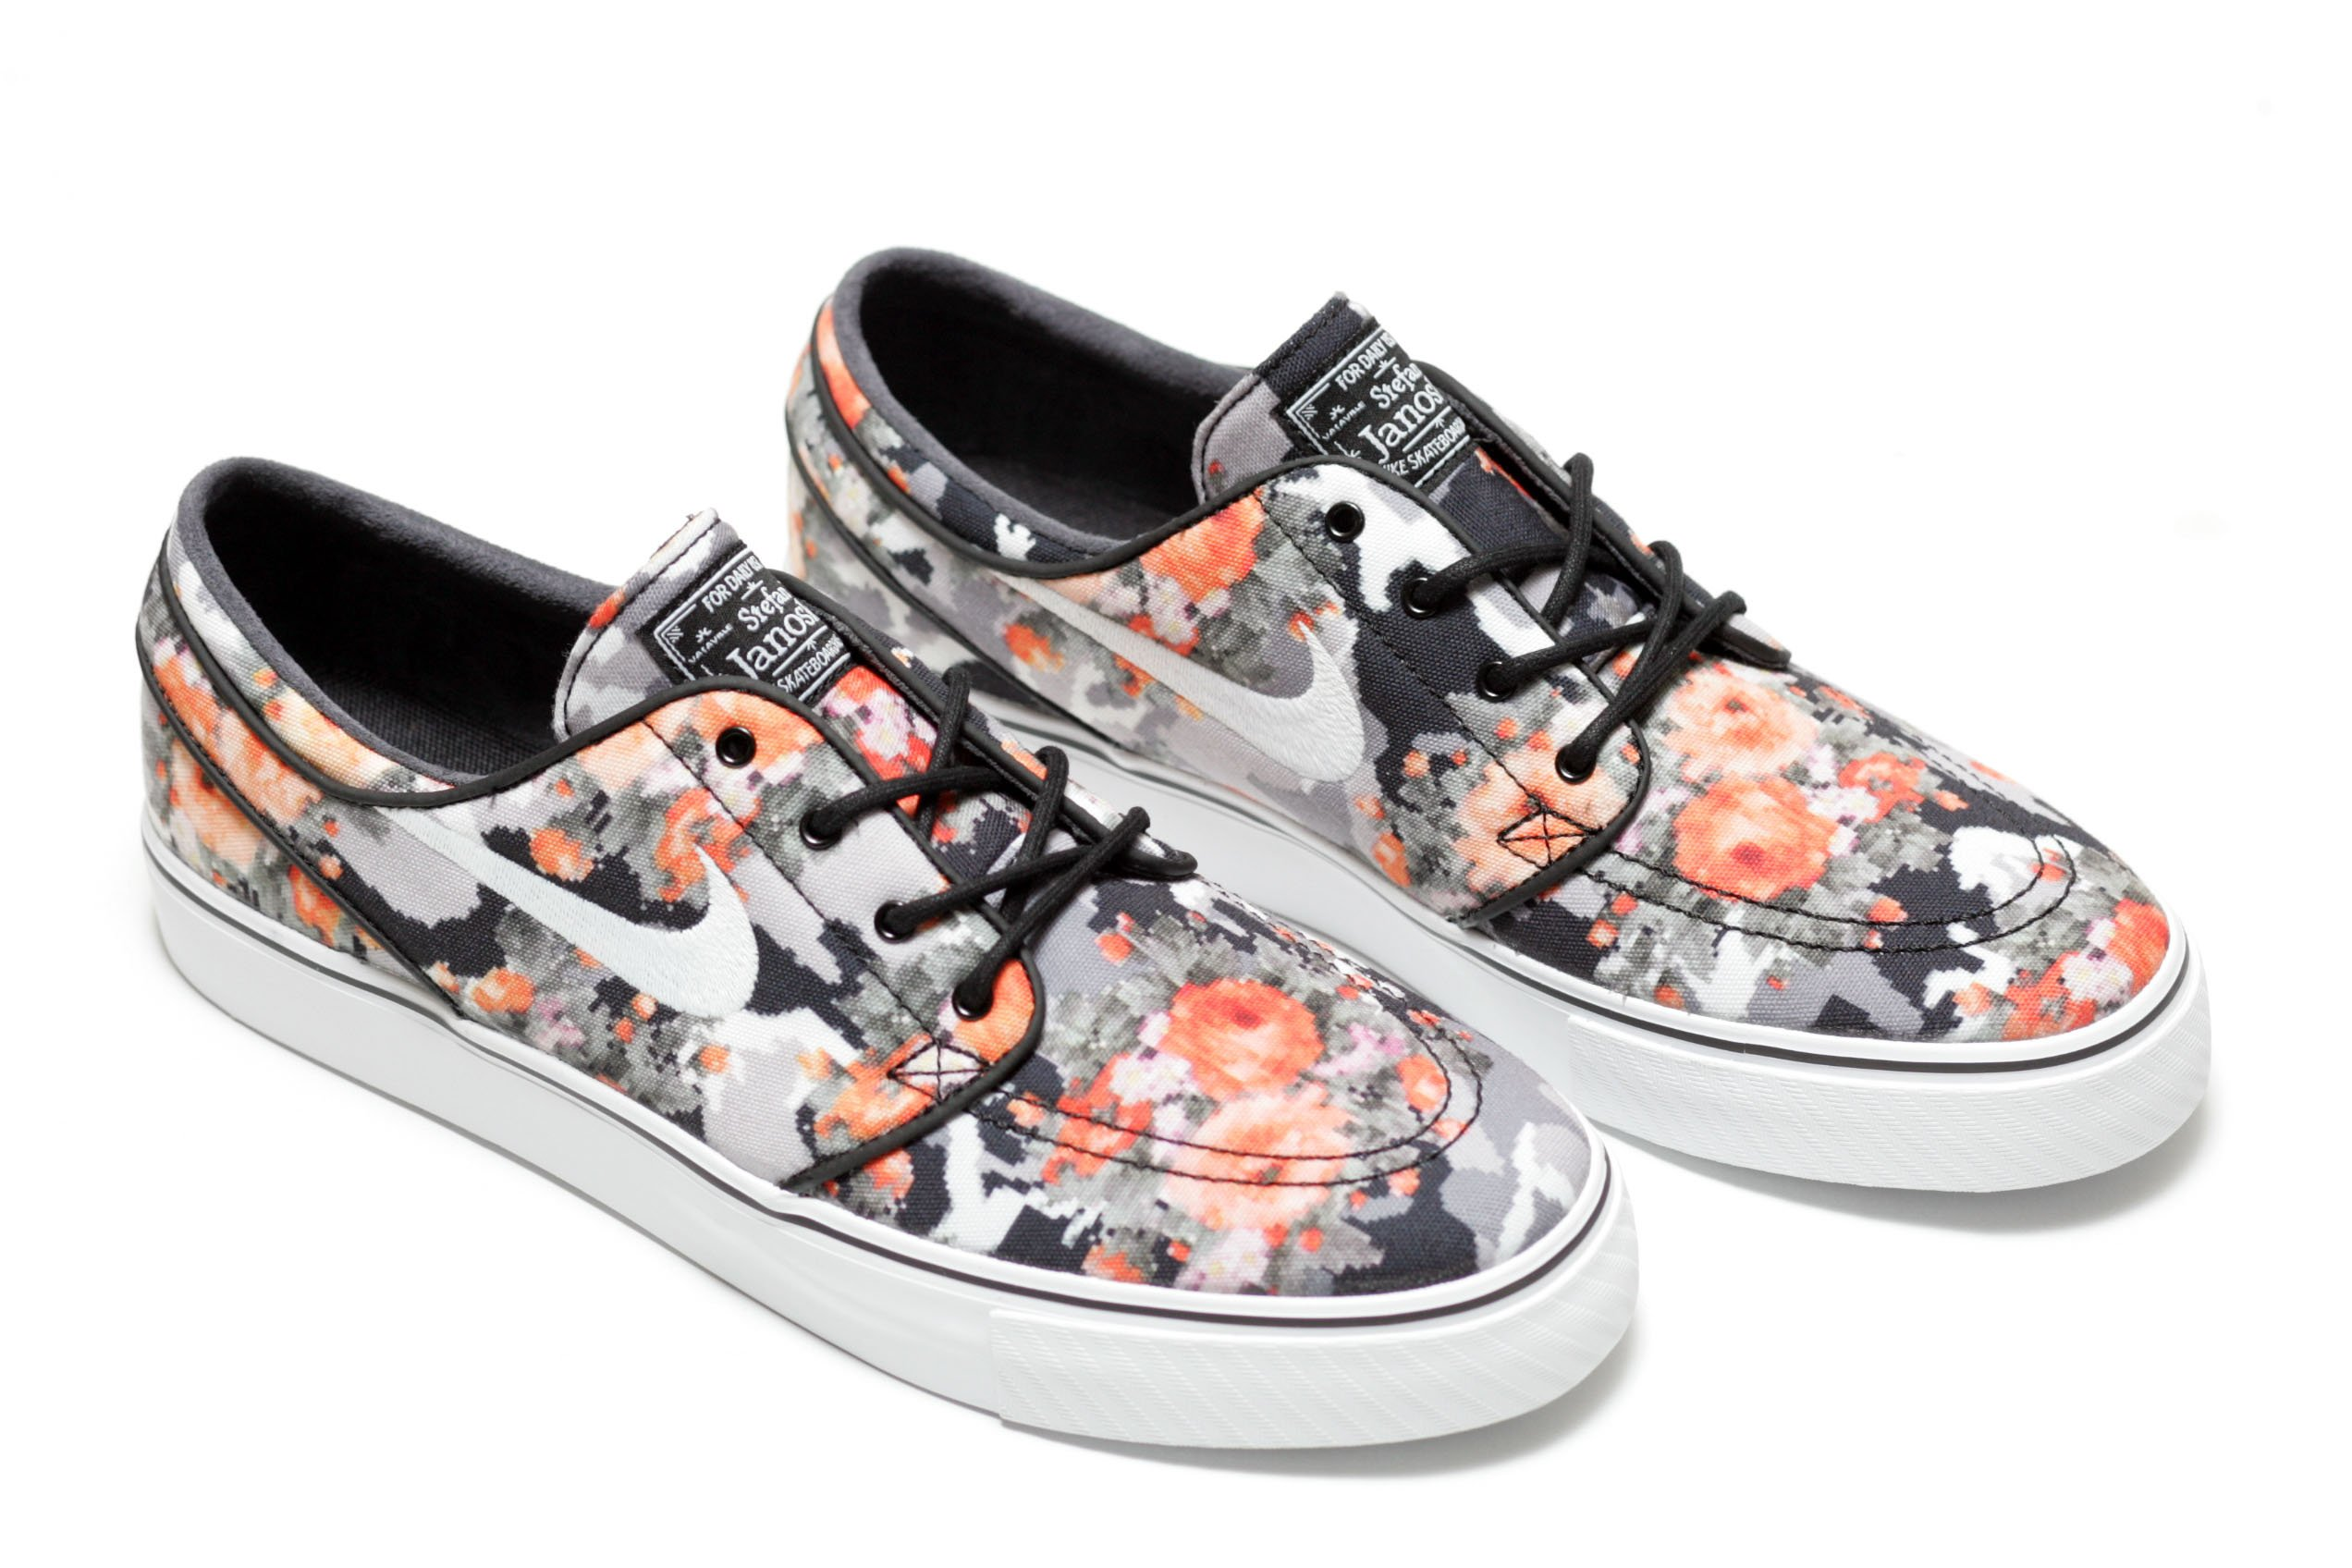 Floral Nike Sb Shoes